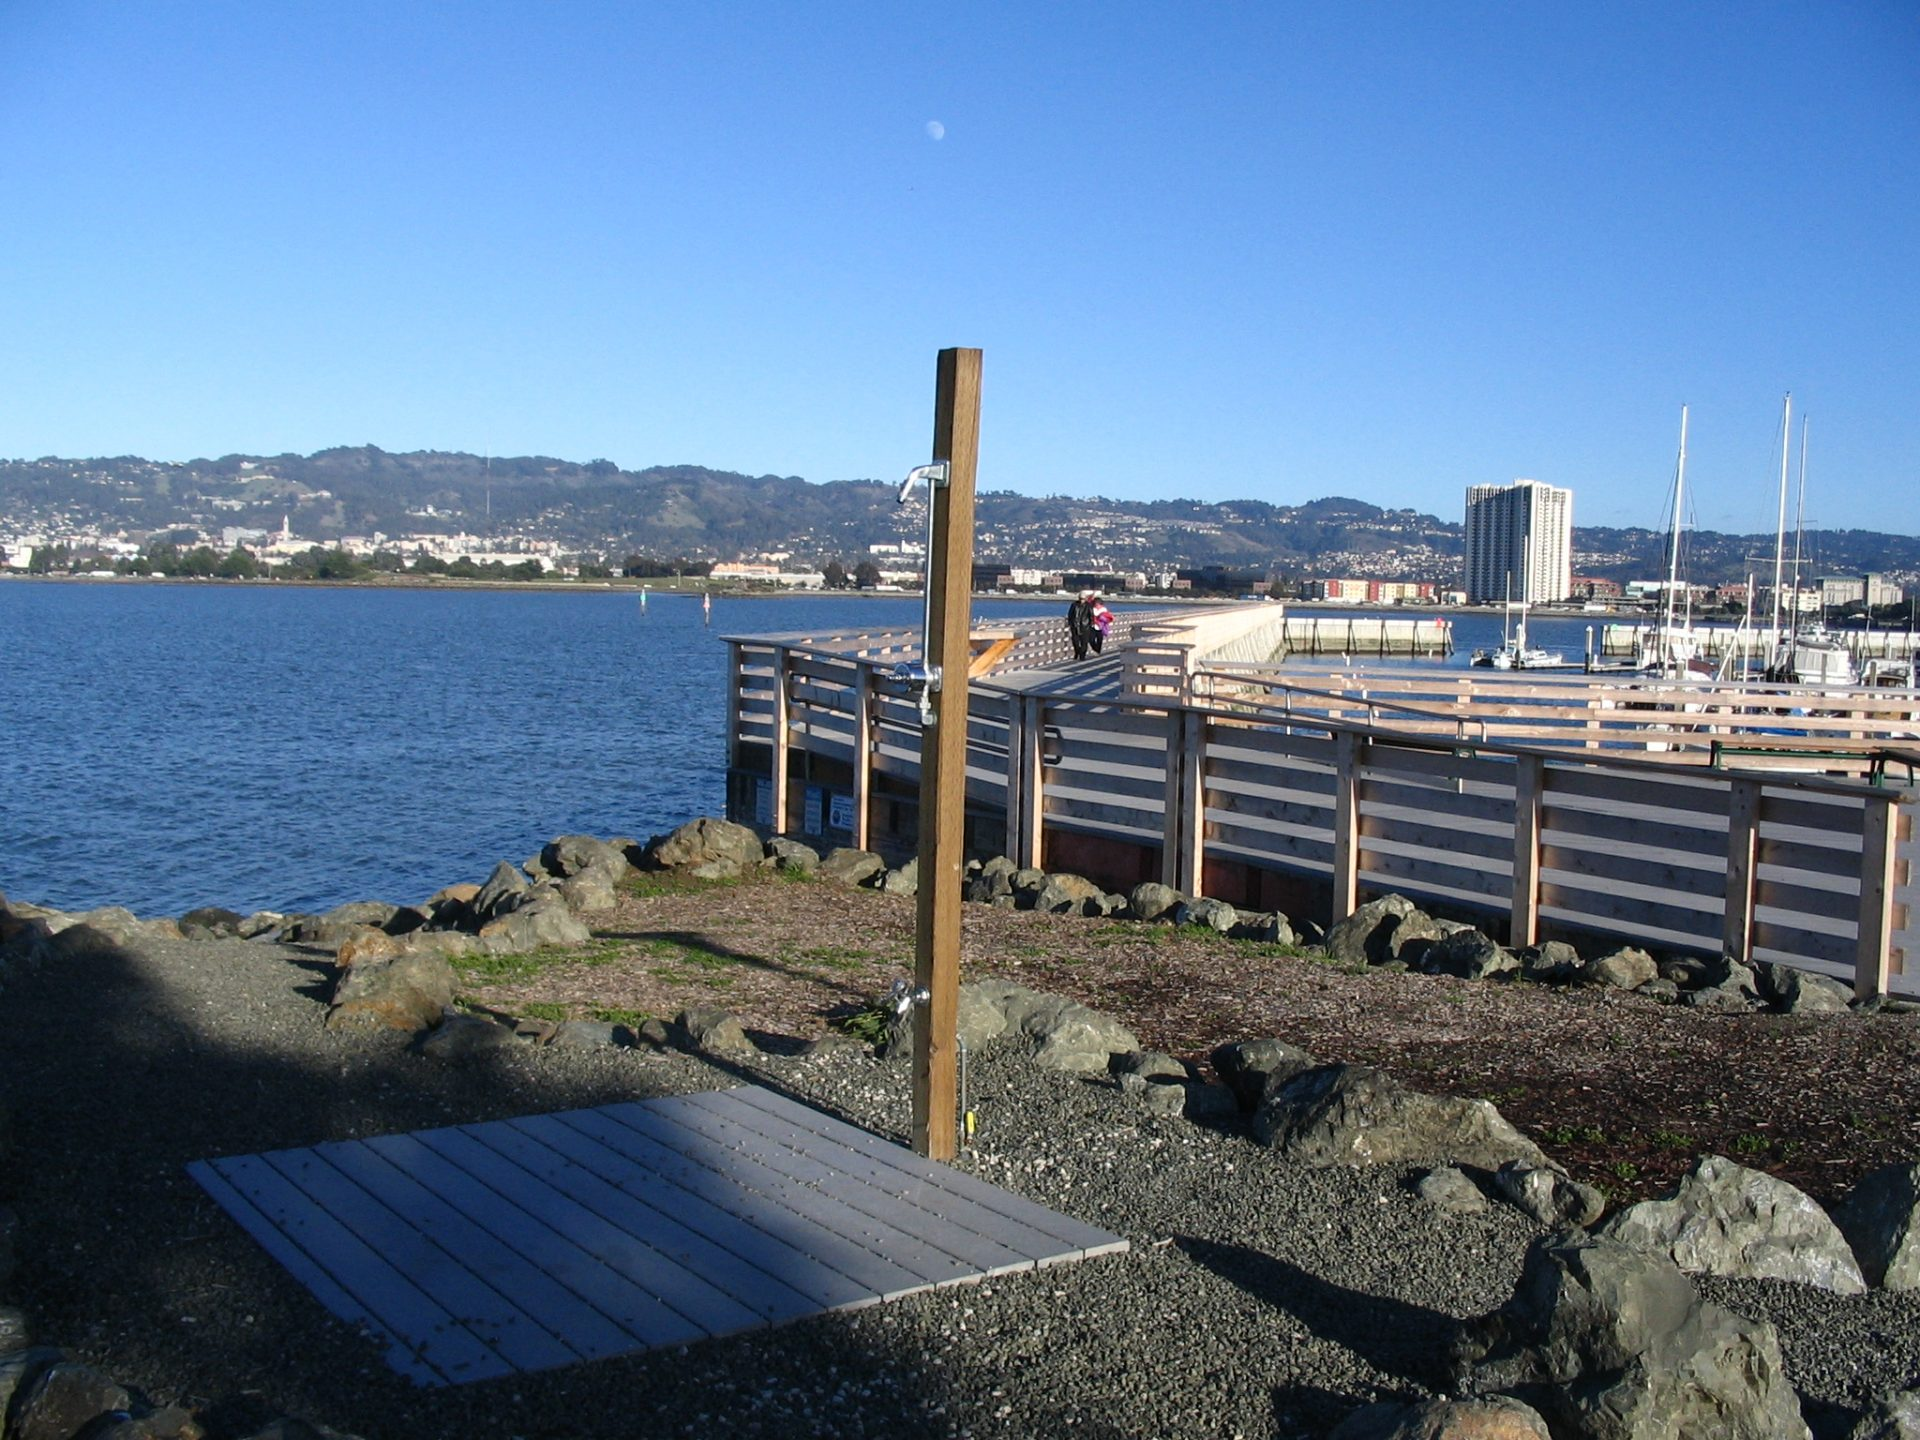 outdoor shower with plank floor, and wooden pier in background